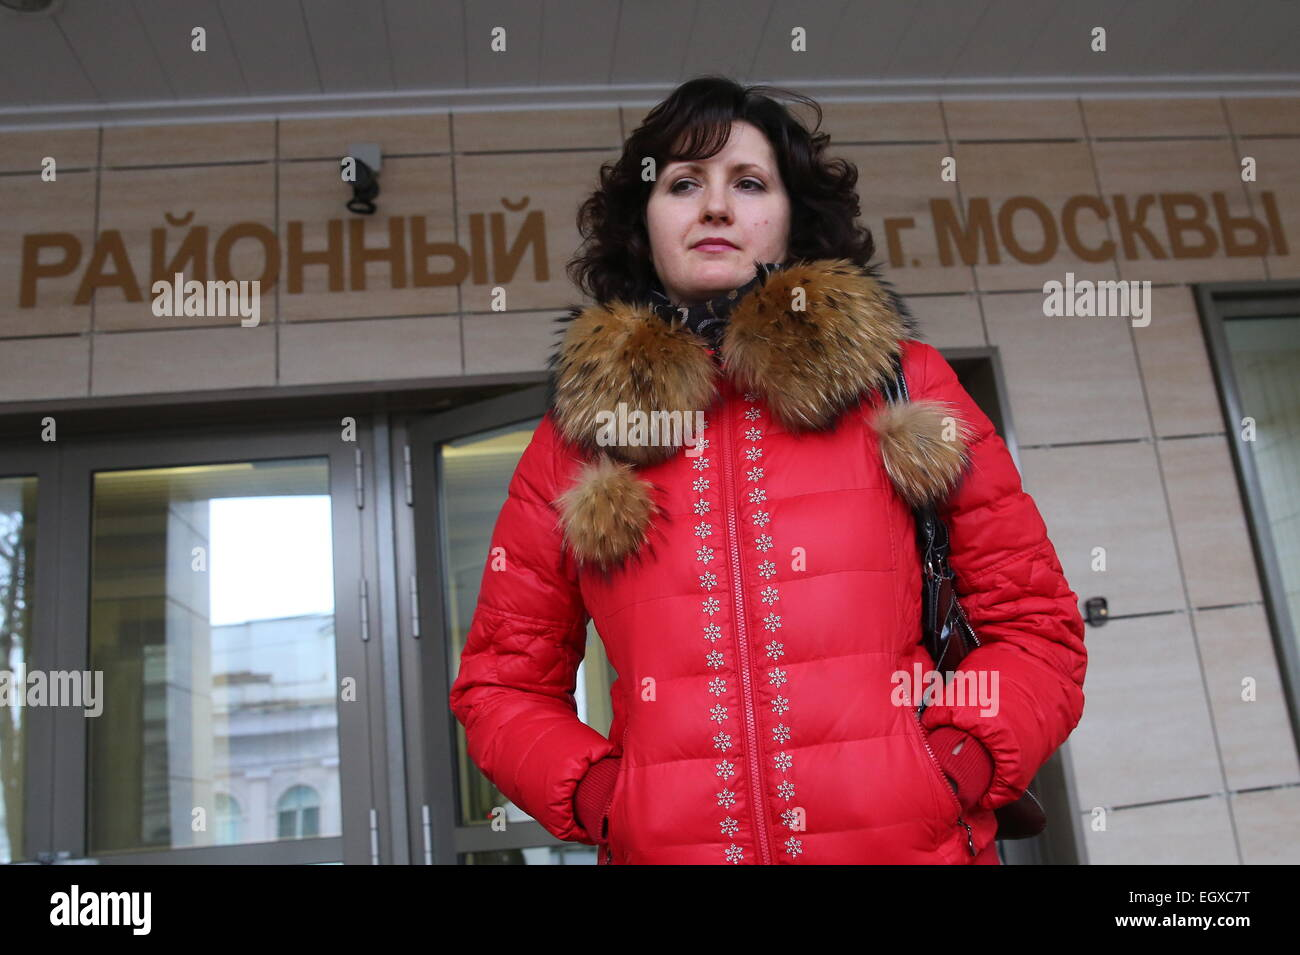 Moscow, Russia. 03rd Mar, 2015. Yelena Bushuyeva, the wife of a murdered police officer, at Moscow's Butyrsky - Stock Image